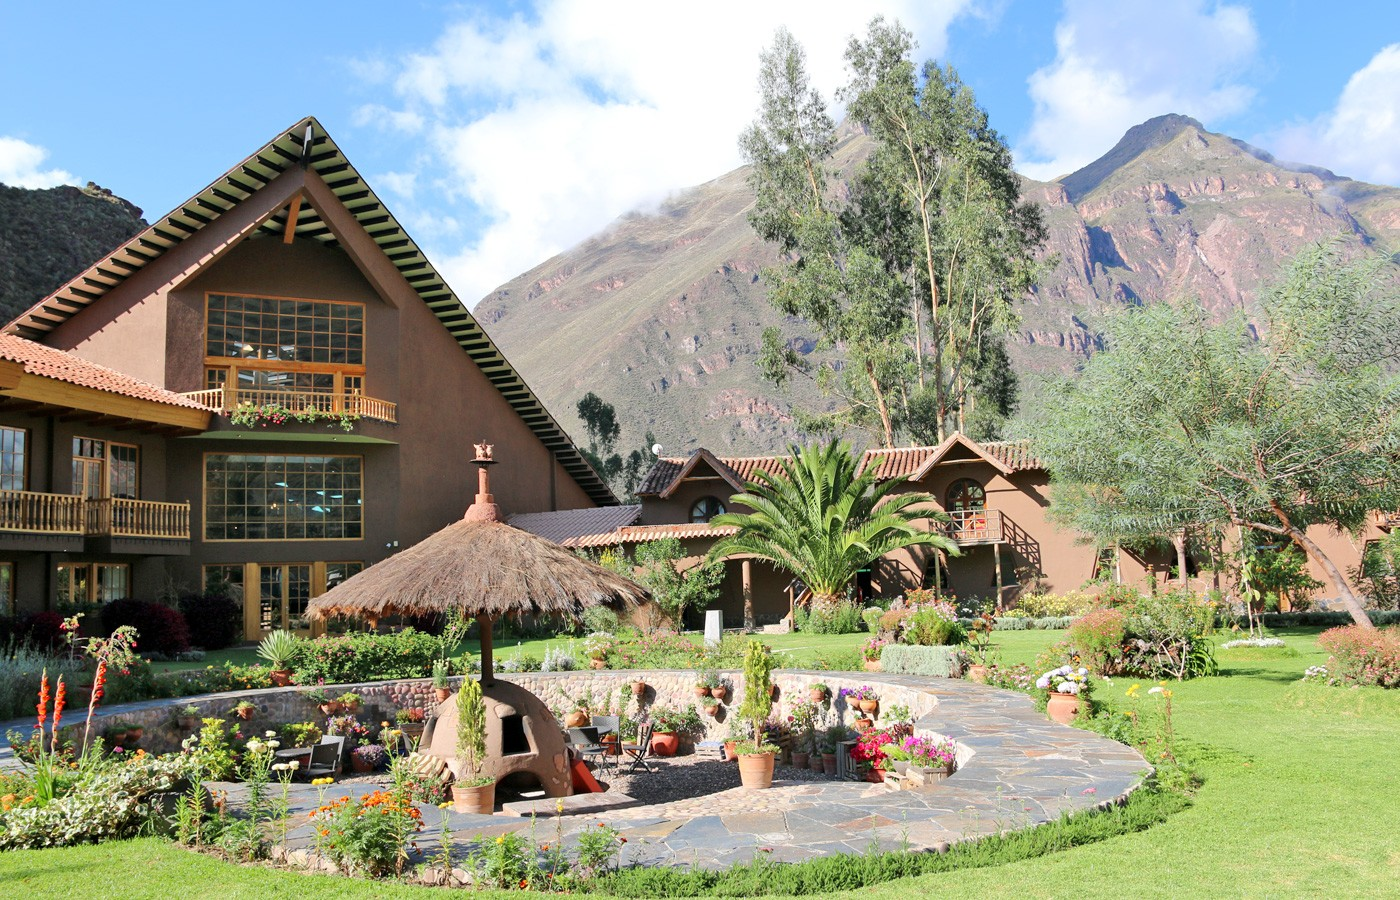 Lamay Lodge, Peru